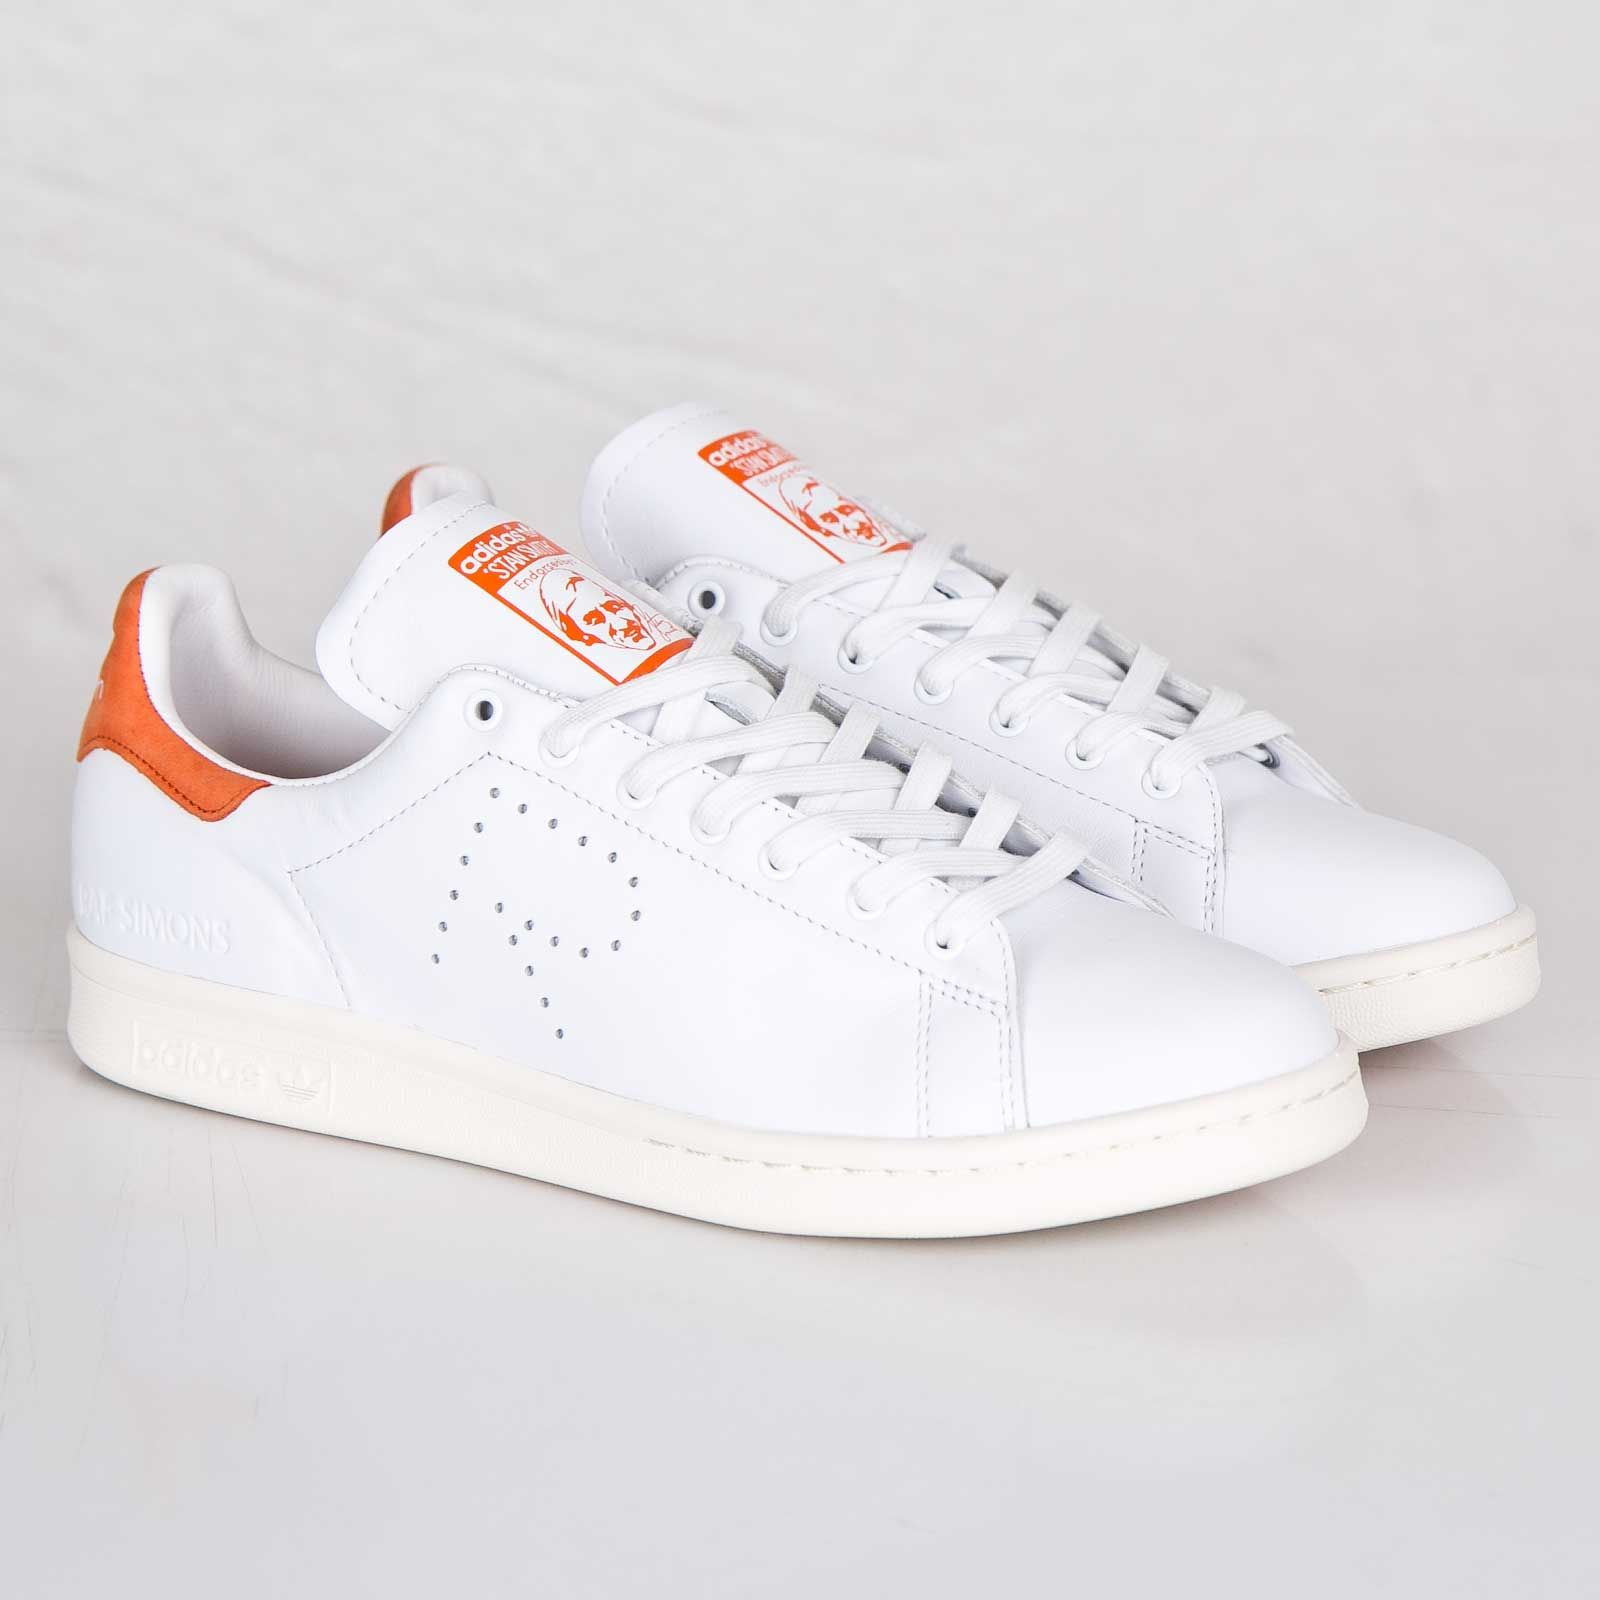 detailed look 37605 2a57e Adidas Originals Raf Simons Stan Smith  Orange .